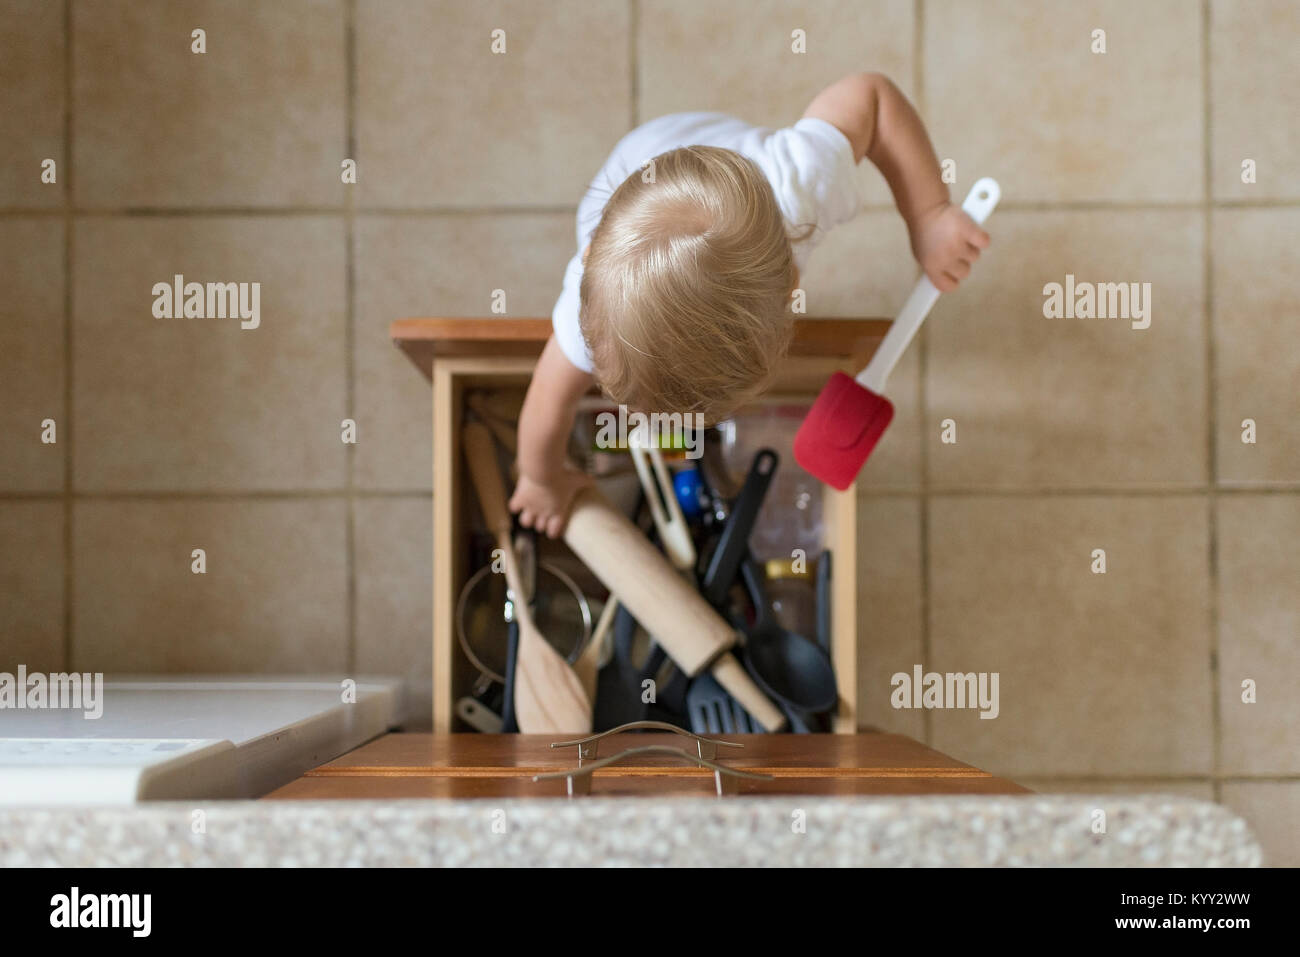 Overhead view of baby boy removing kitchen utensils from drawer - Stock Image